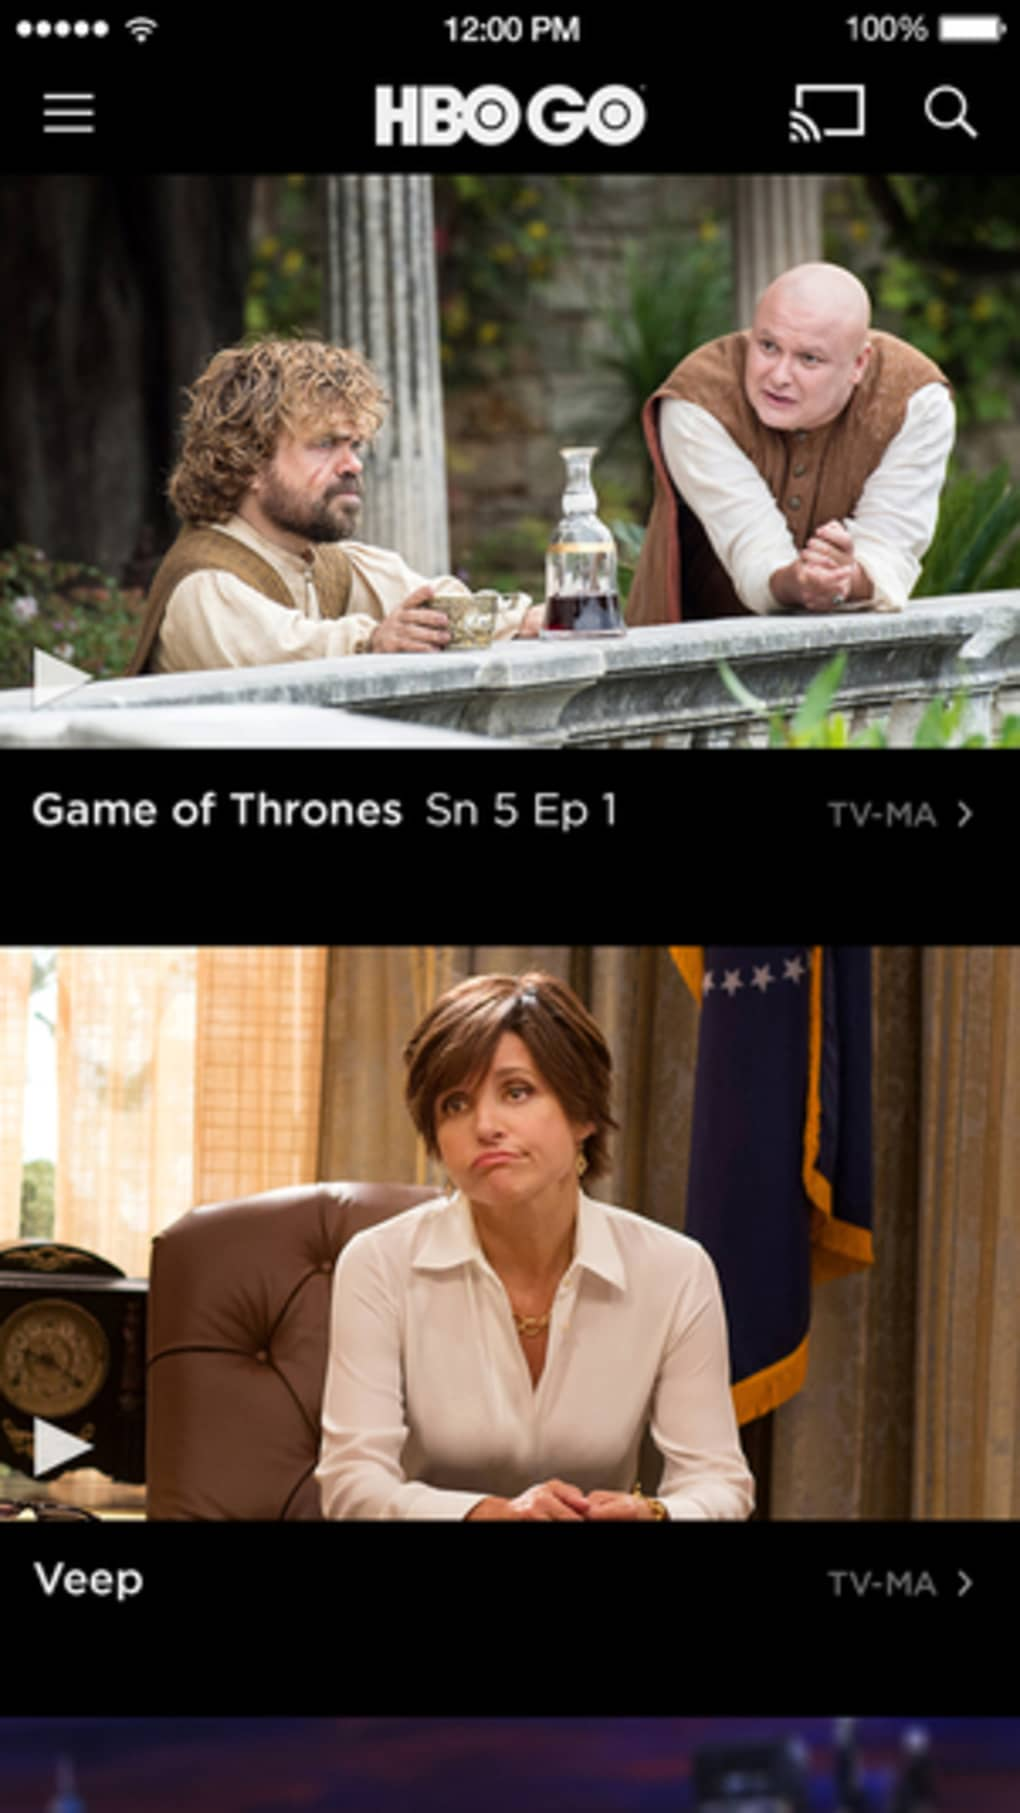 HBO GO for iPhone - Download